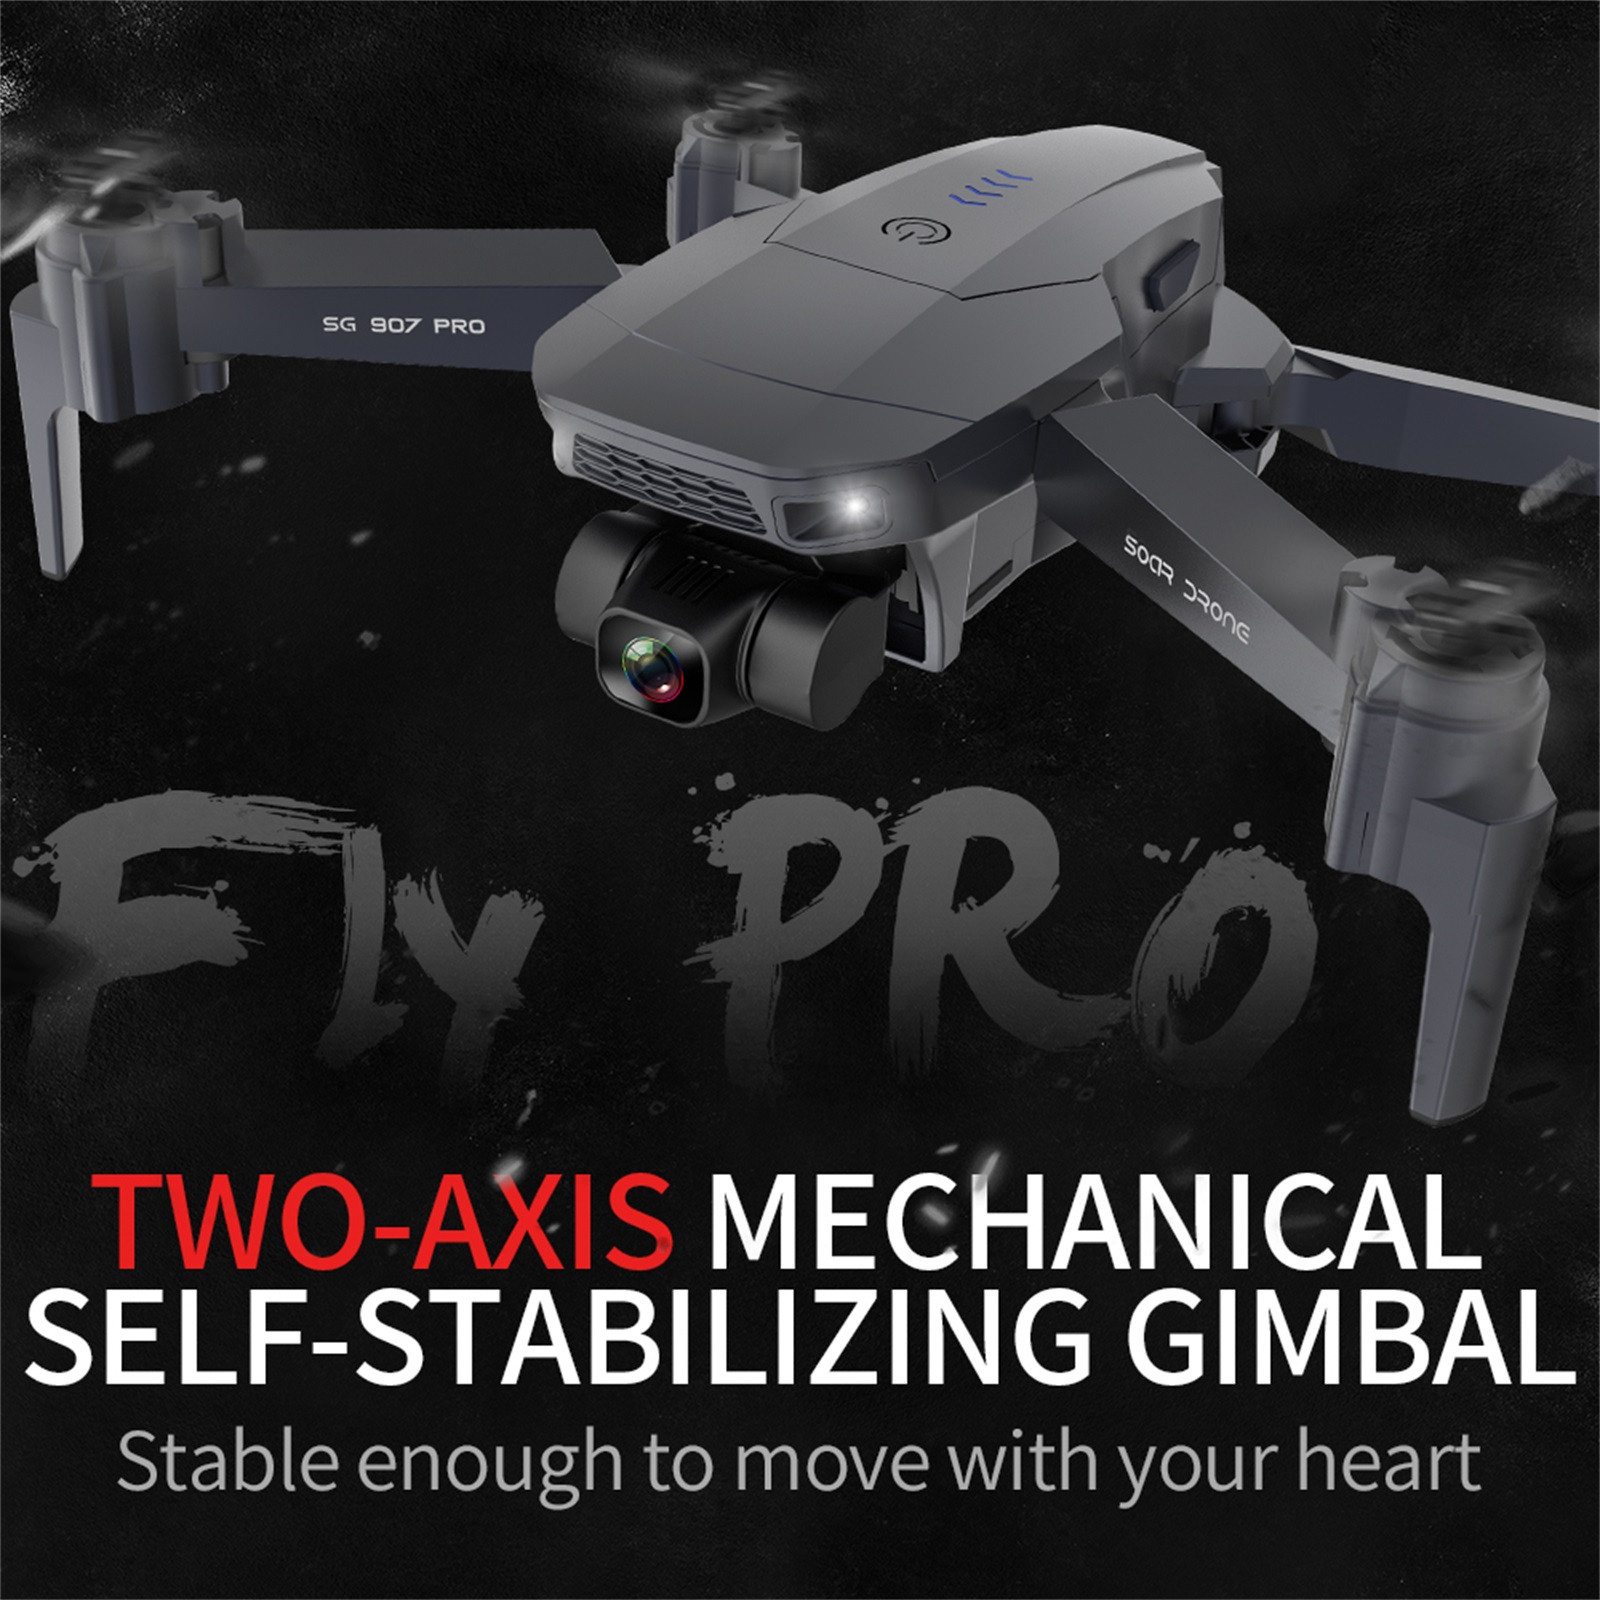 H306157292e2d49a7bd94ff3e145ff87dV - 2020 New Sg907 Pro 5g Wifi Drone 2-axis Gimbal 4k Camera Wifi Gps Rc Drone Toy Rc Four-axis Professional Folding Camera Drones